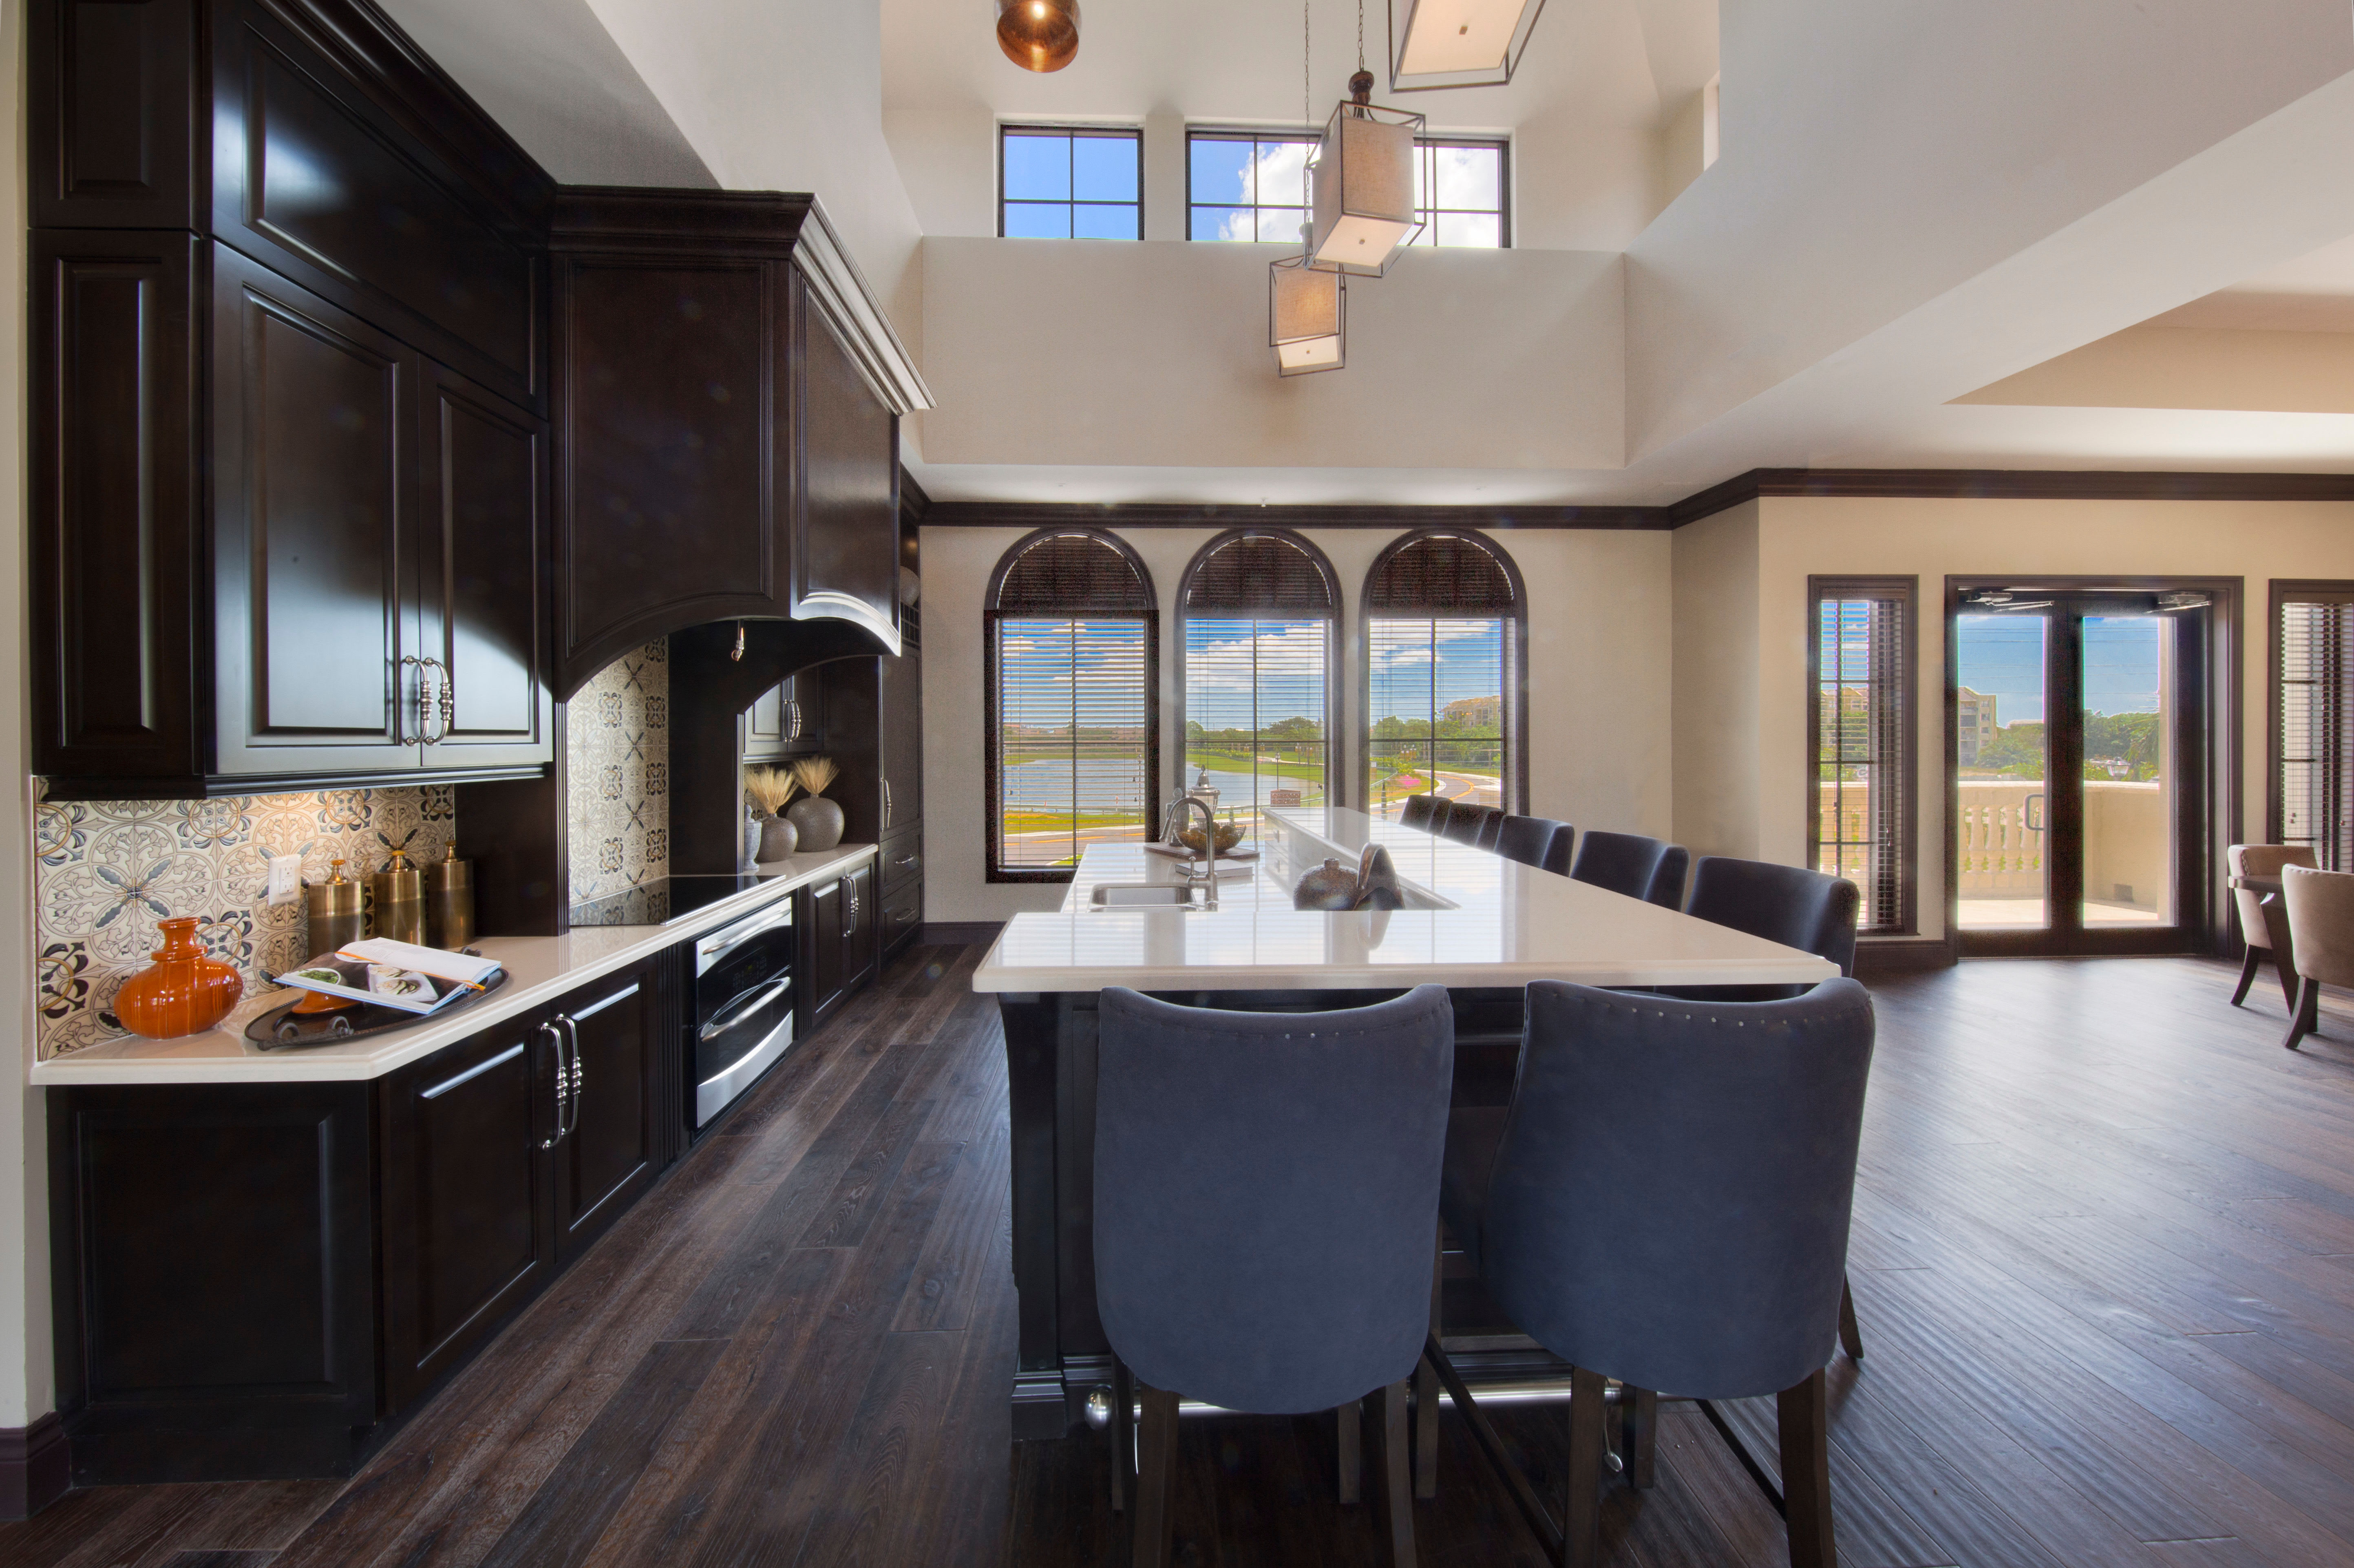 Gourmet kitchen with an island and granite countertops in a model home at Town Fontainebleau Lakes Apartment Residences in Miami, Florida